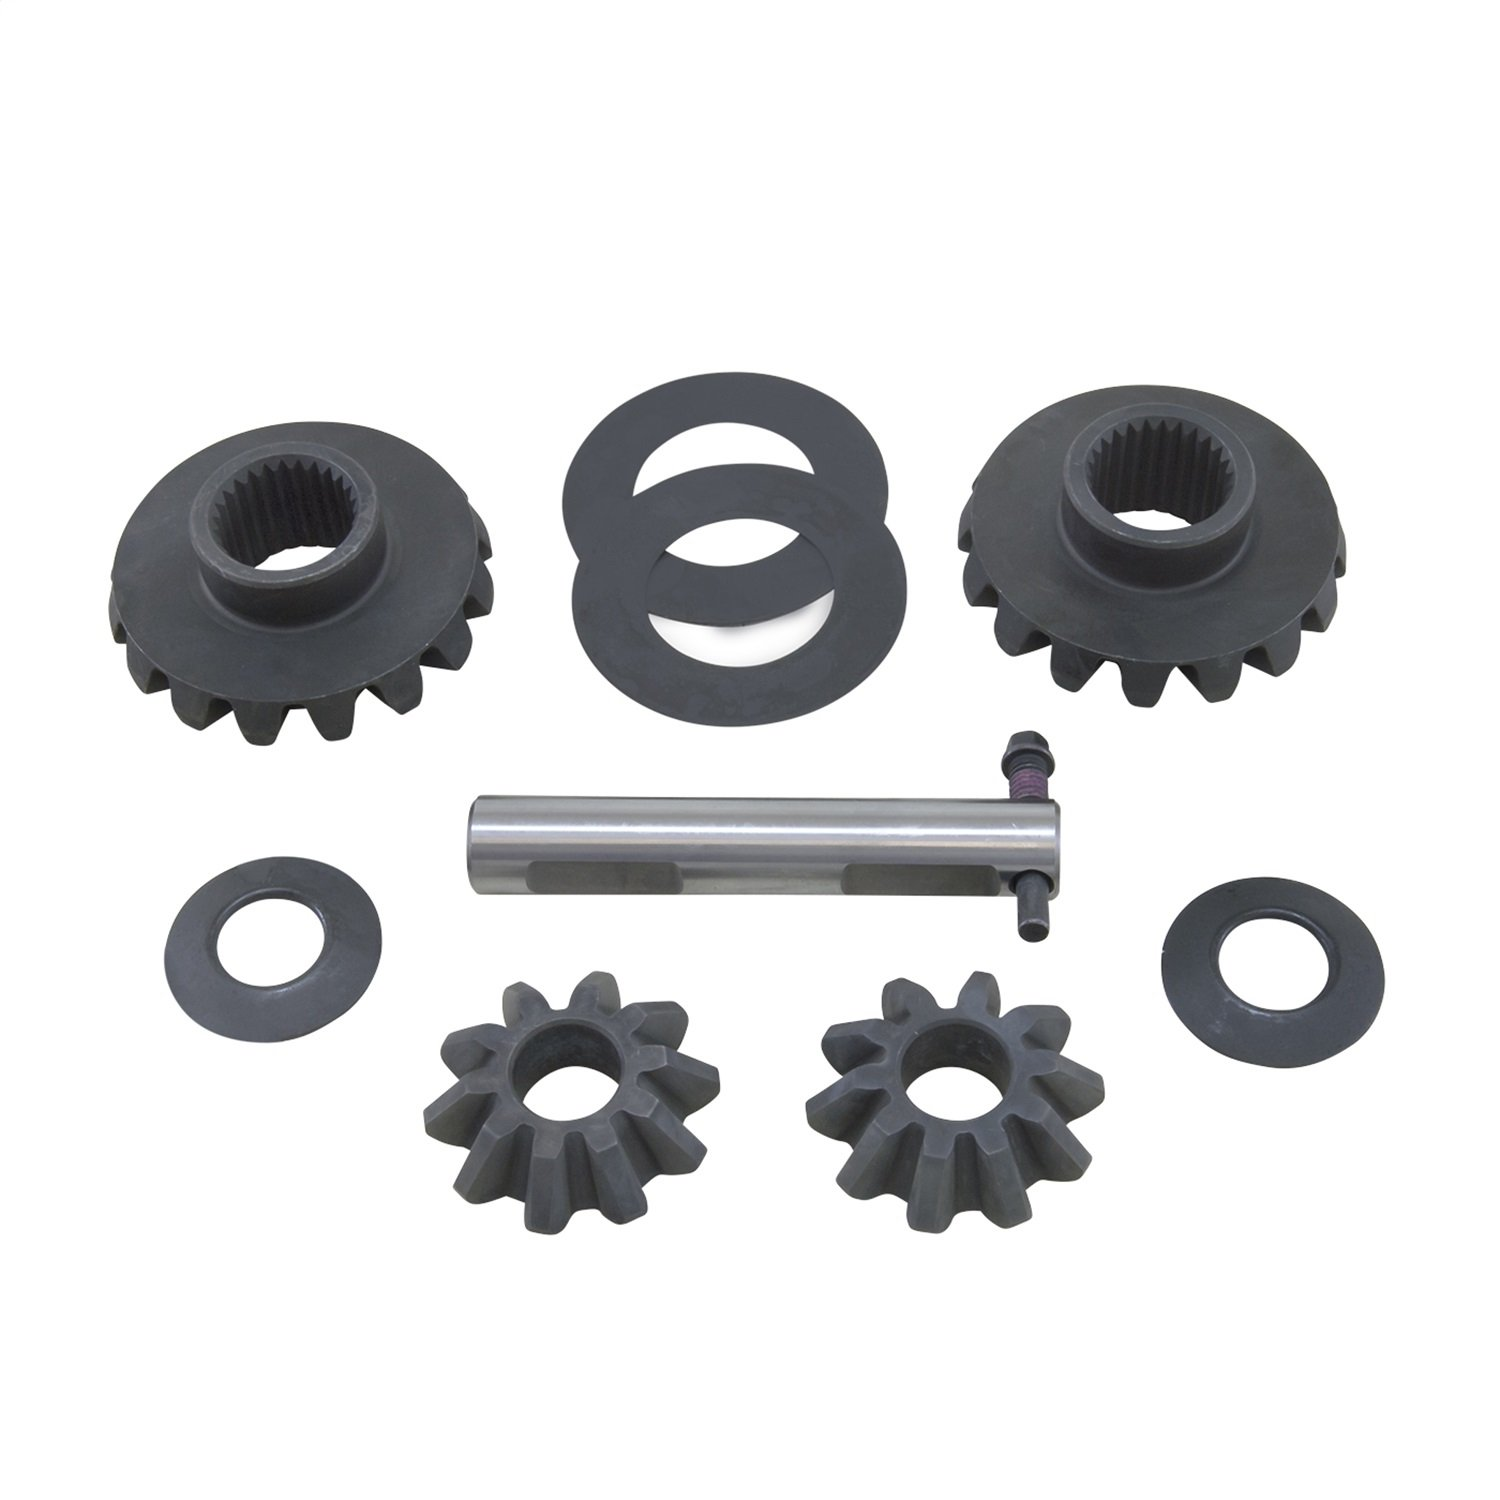 Yukon Gear & Axle (YPKGM7.5-S-26) Standard Open Spider Gear Kit for GM 7.5 Differential